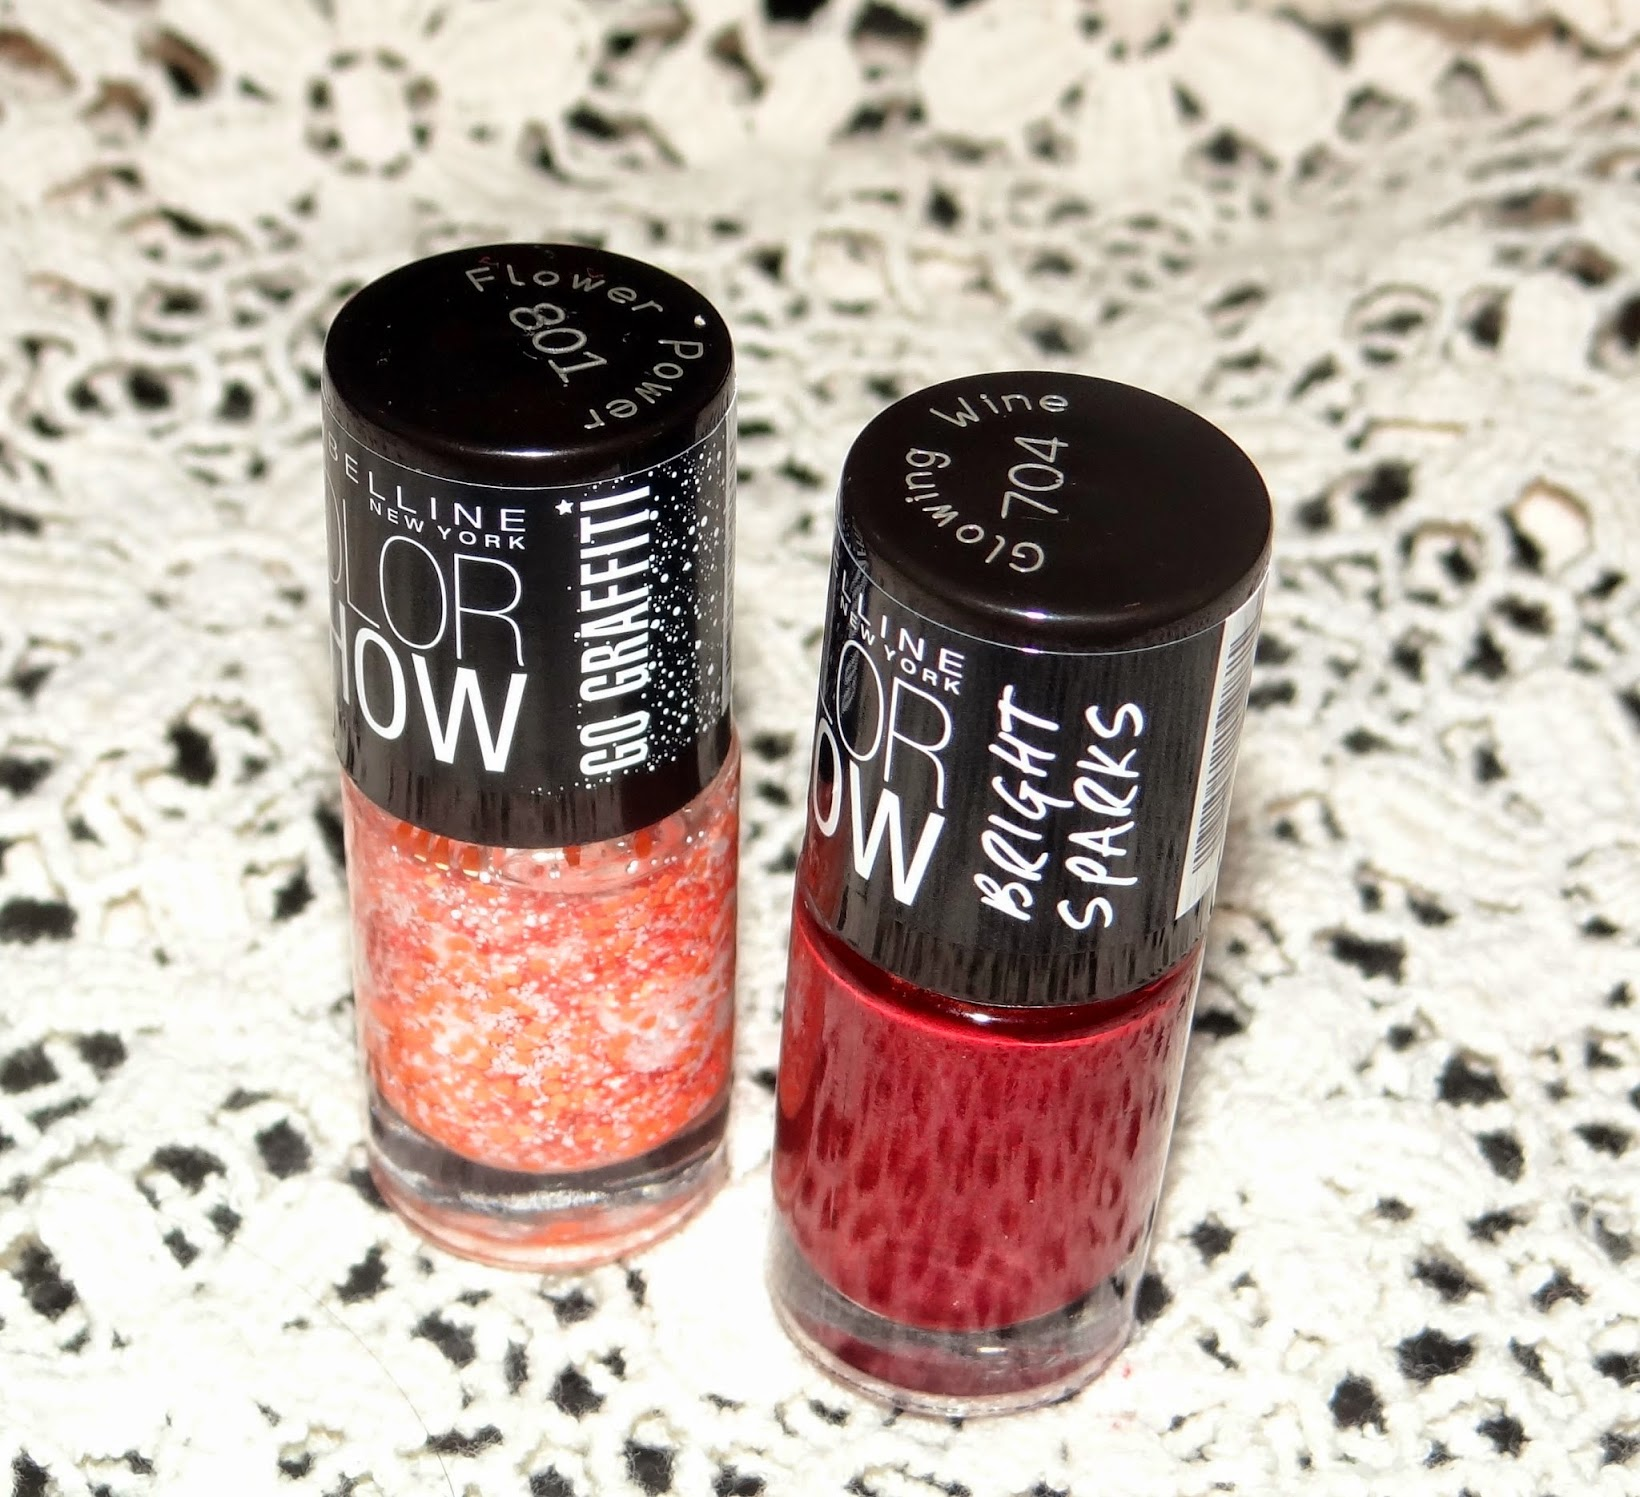 #SpringupyourSummer with Maybelline NY Rebel Bouquet Collection- Review, NOTD, price